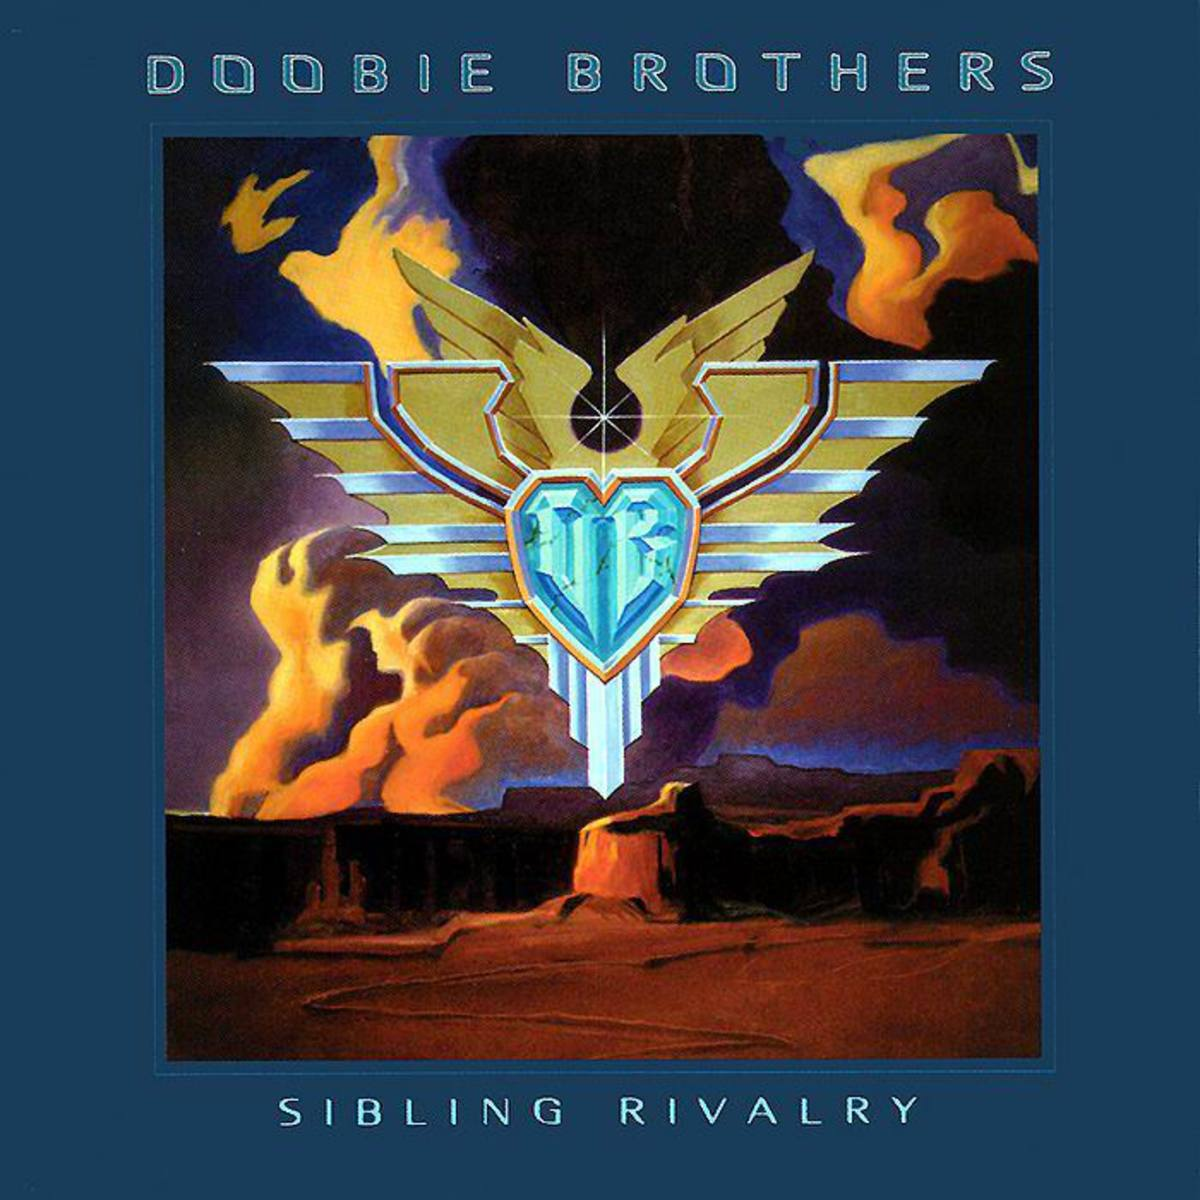 "Doobie Brothers ""Sibling Rivalry"" Rhino Records R2 75809 CD US Pressing (2000) Album Cover Art by Stanley Mouse"